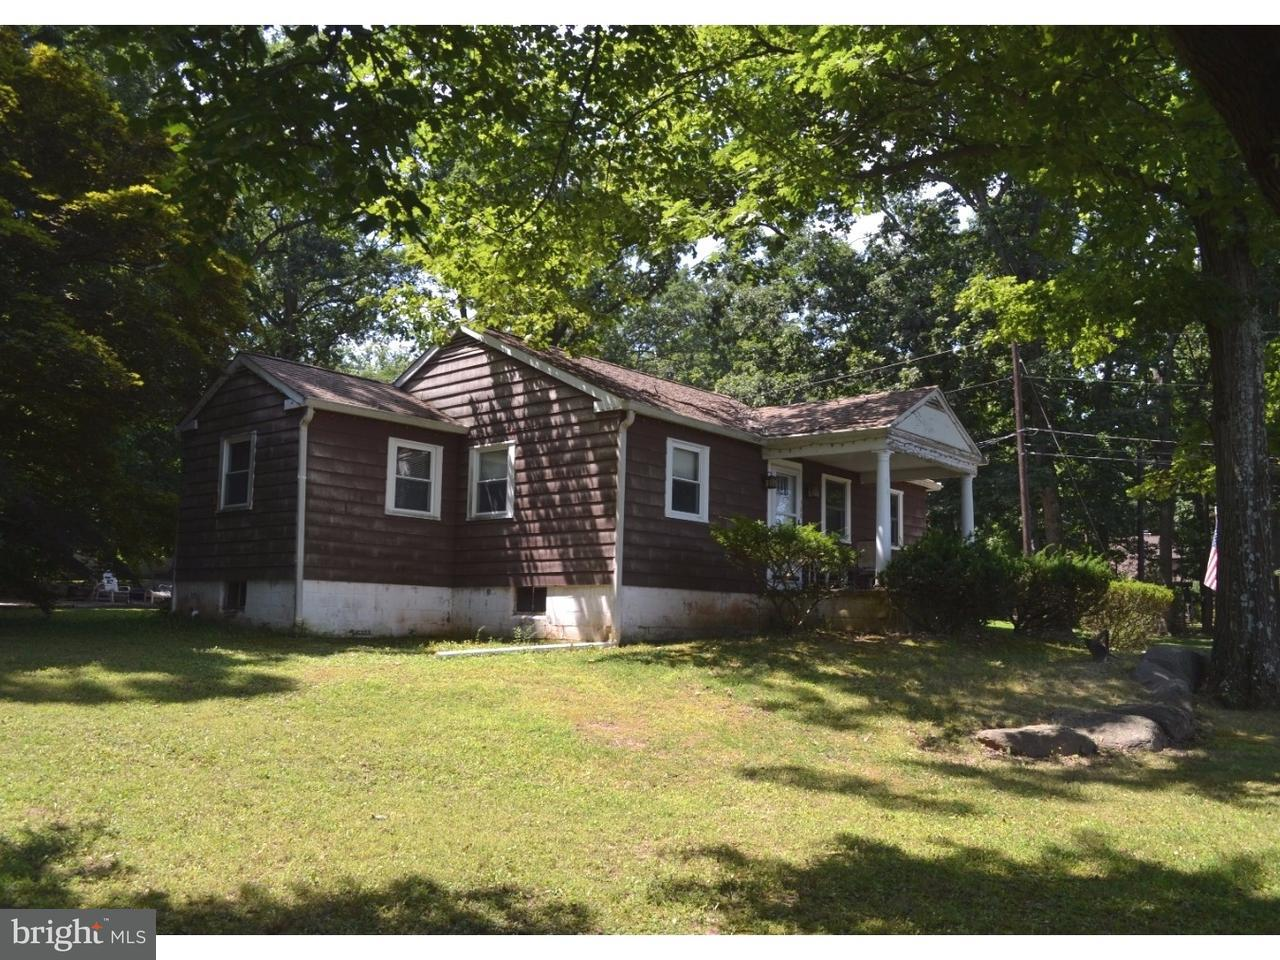 Single Family Home for Sale at 388 NEWTOWN RICHBORO Road Richboro, Pennsylvania 18954 United States